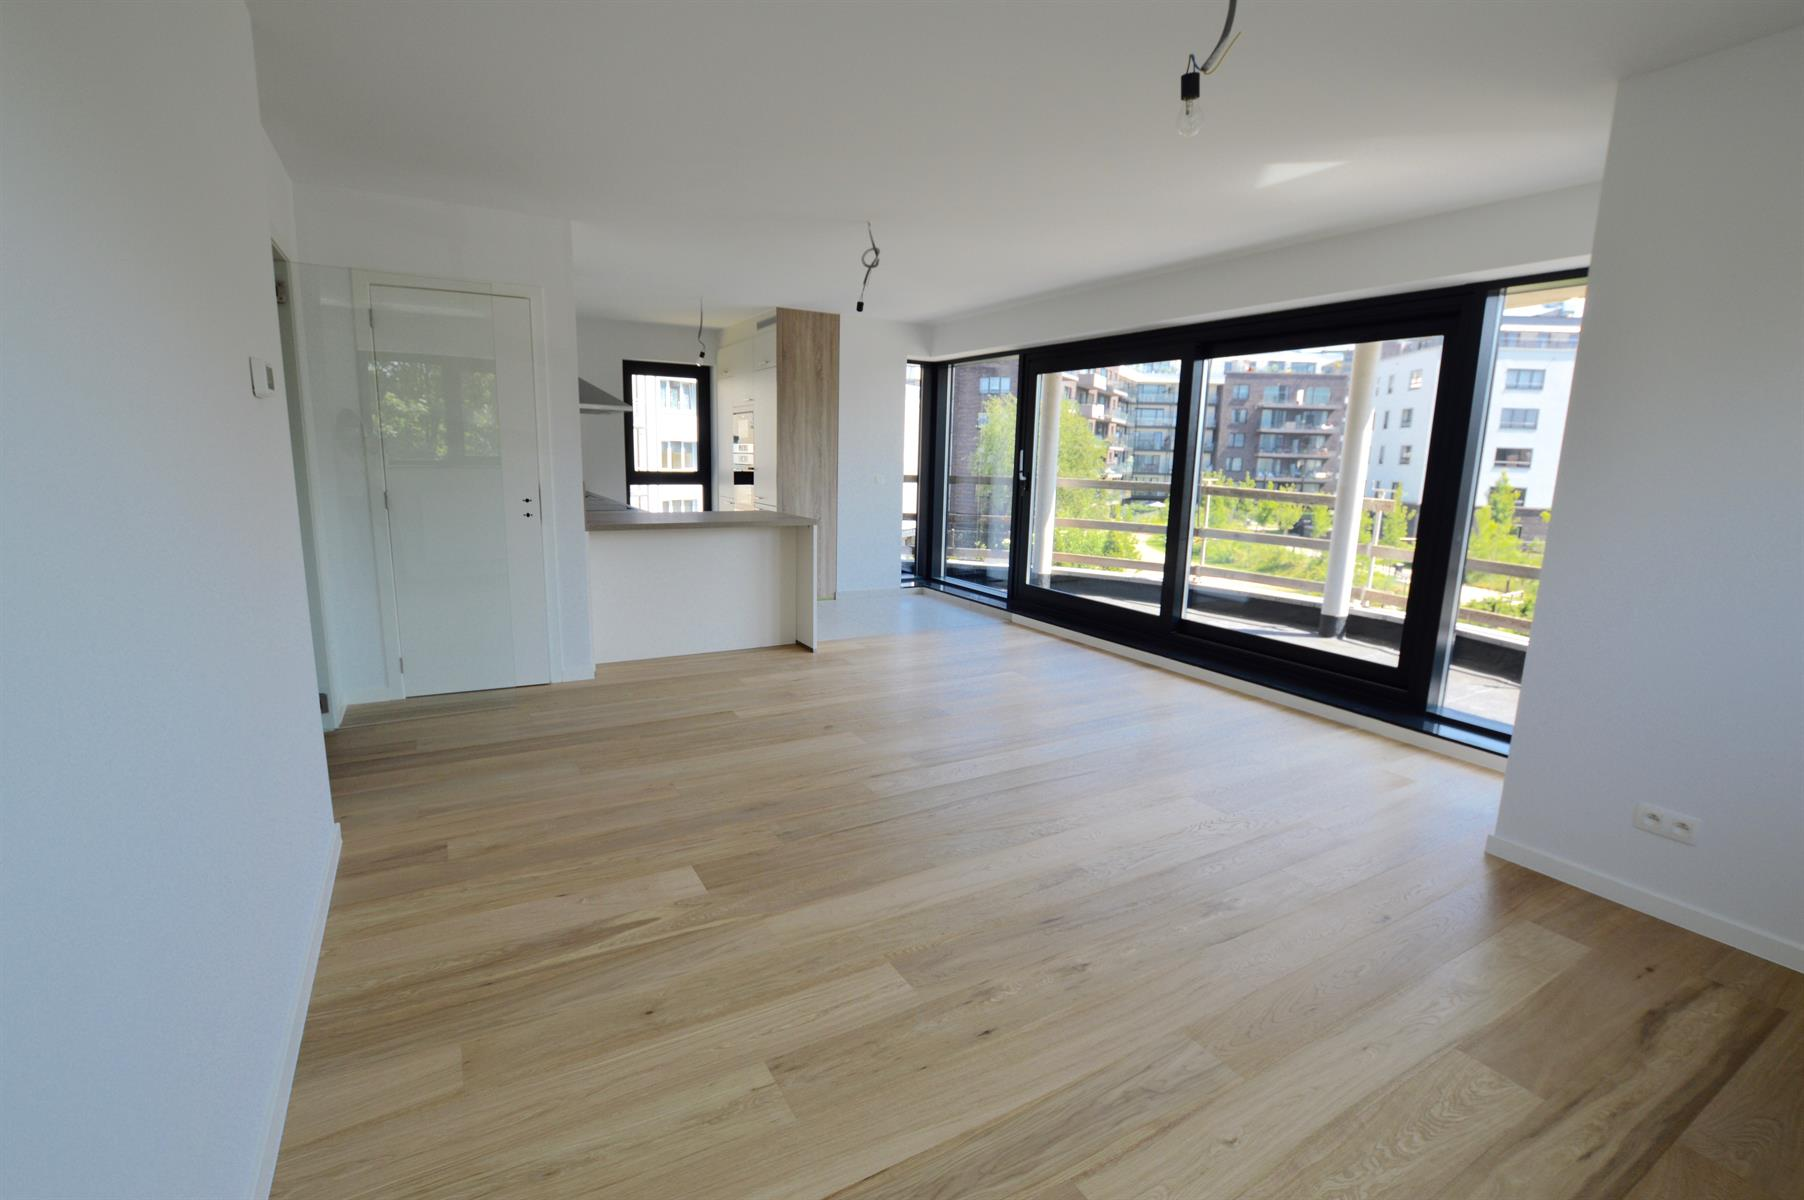 Appartement - Evere - #3999673-1